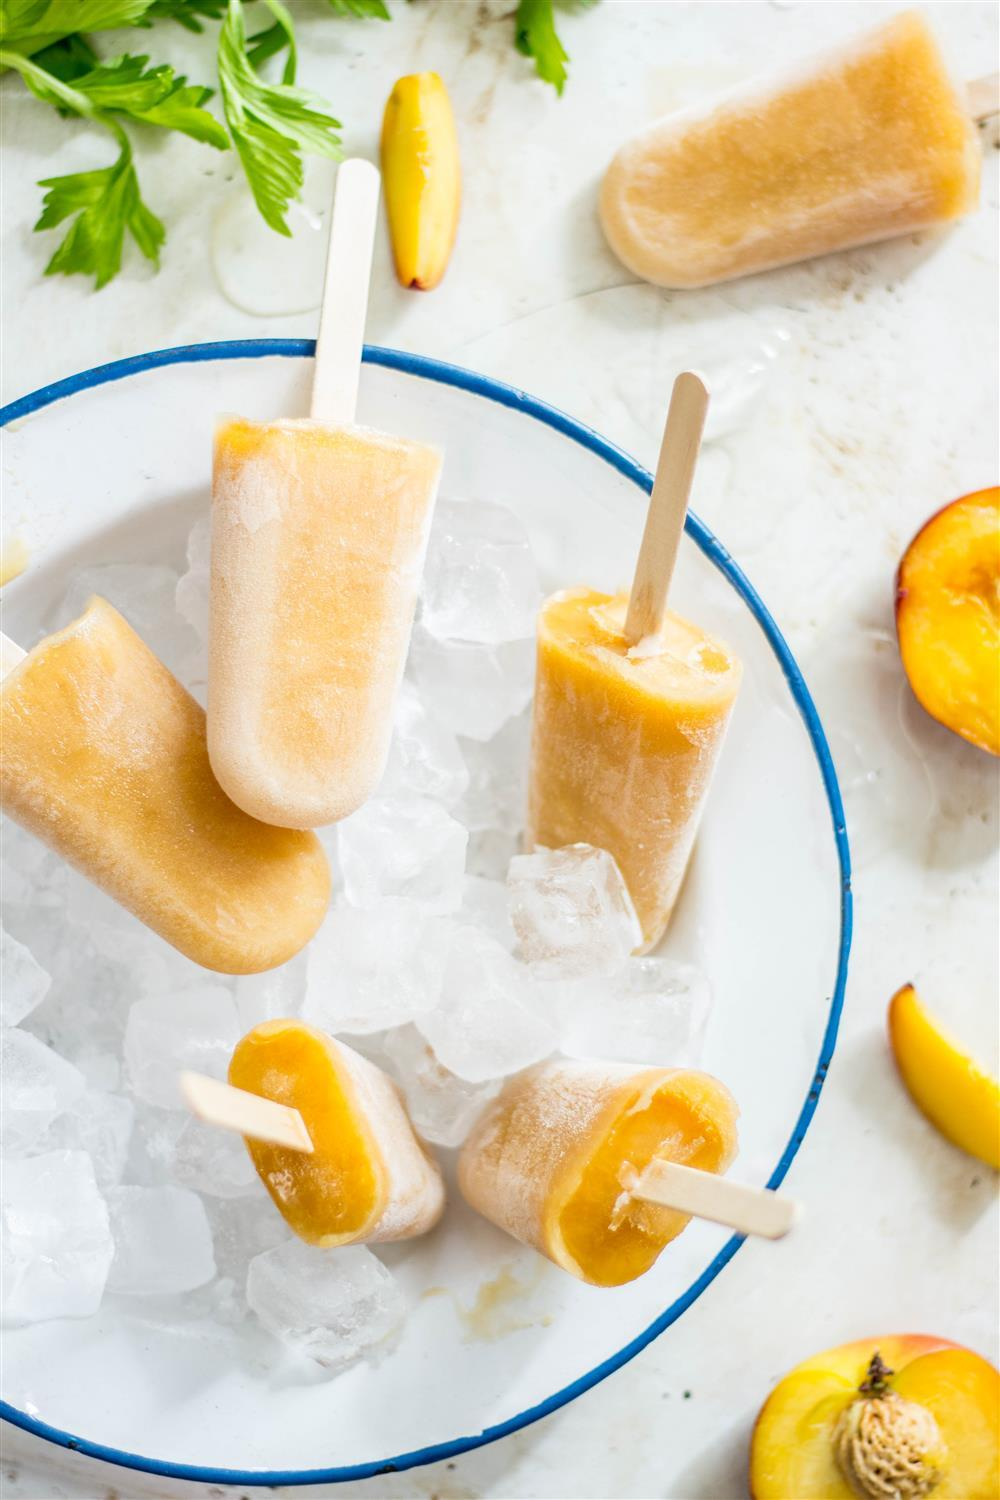 Use Your Noodles - Peach and Celery Ice Lollies